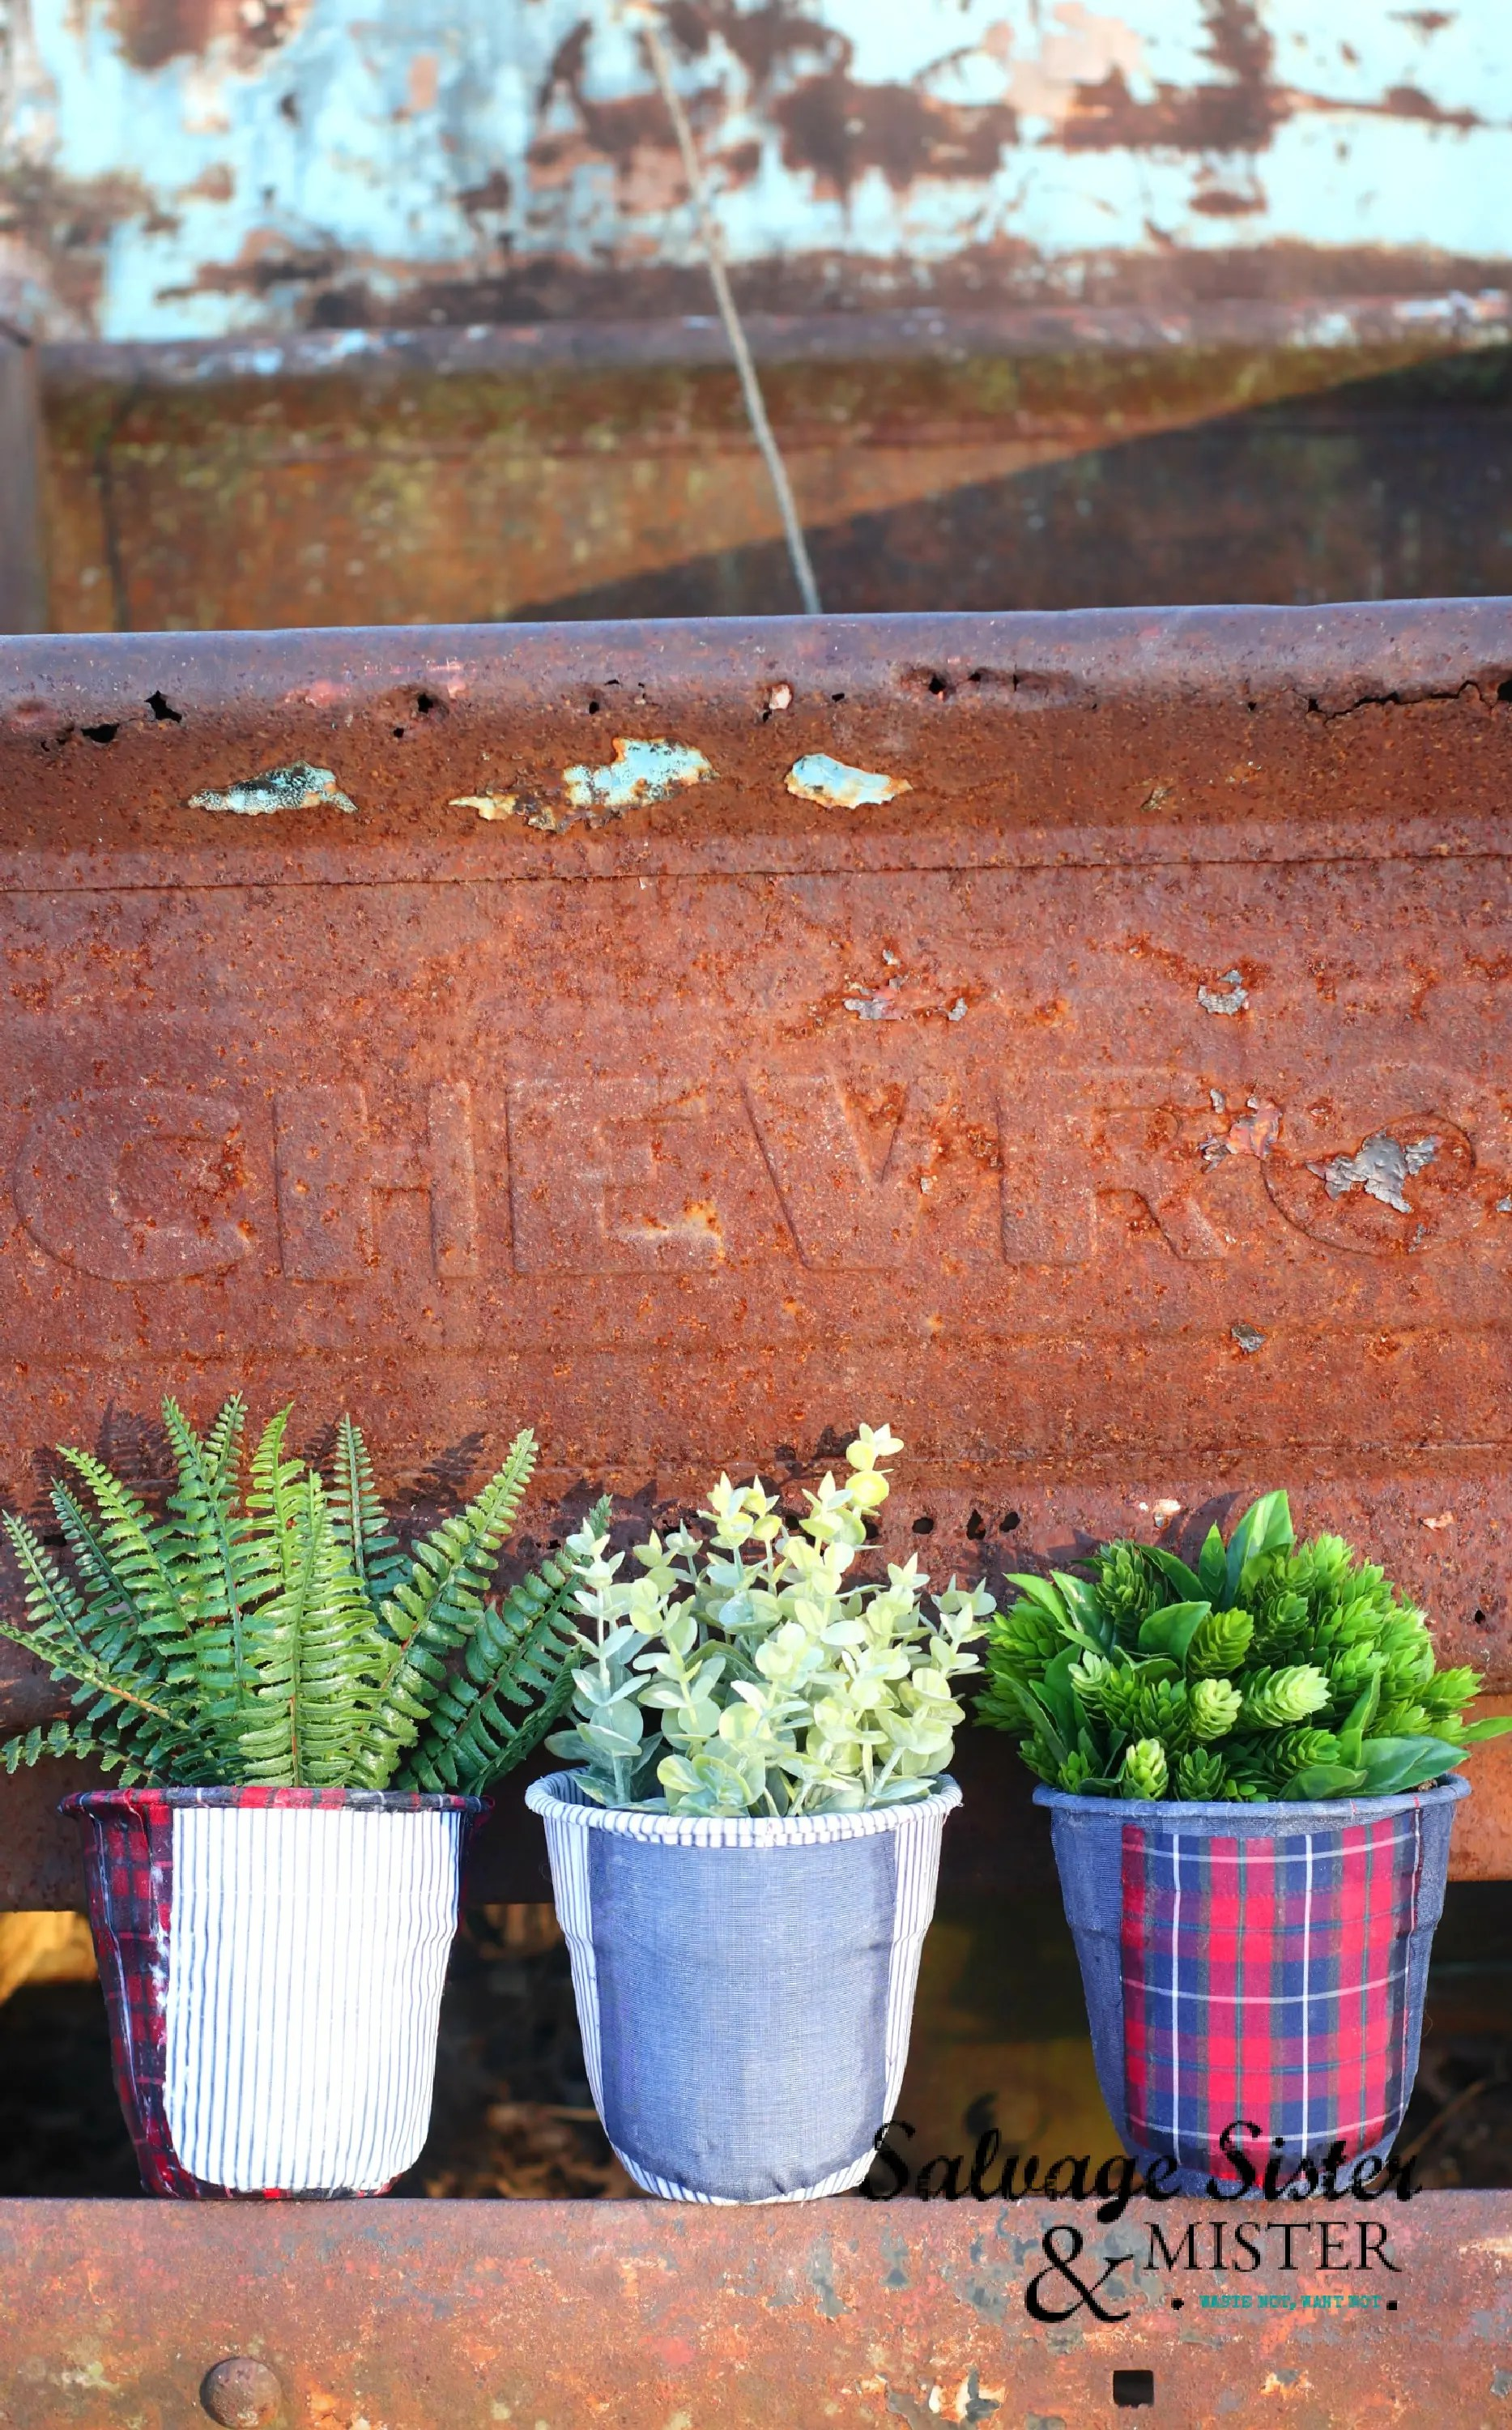 Upcycled men's shirt decoupaged planters in front of a brick wall.